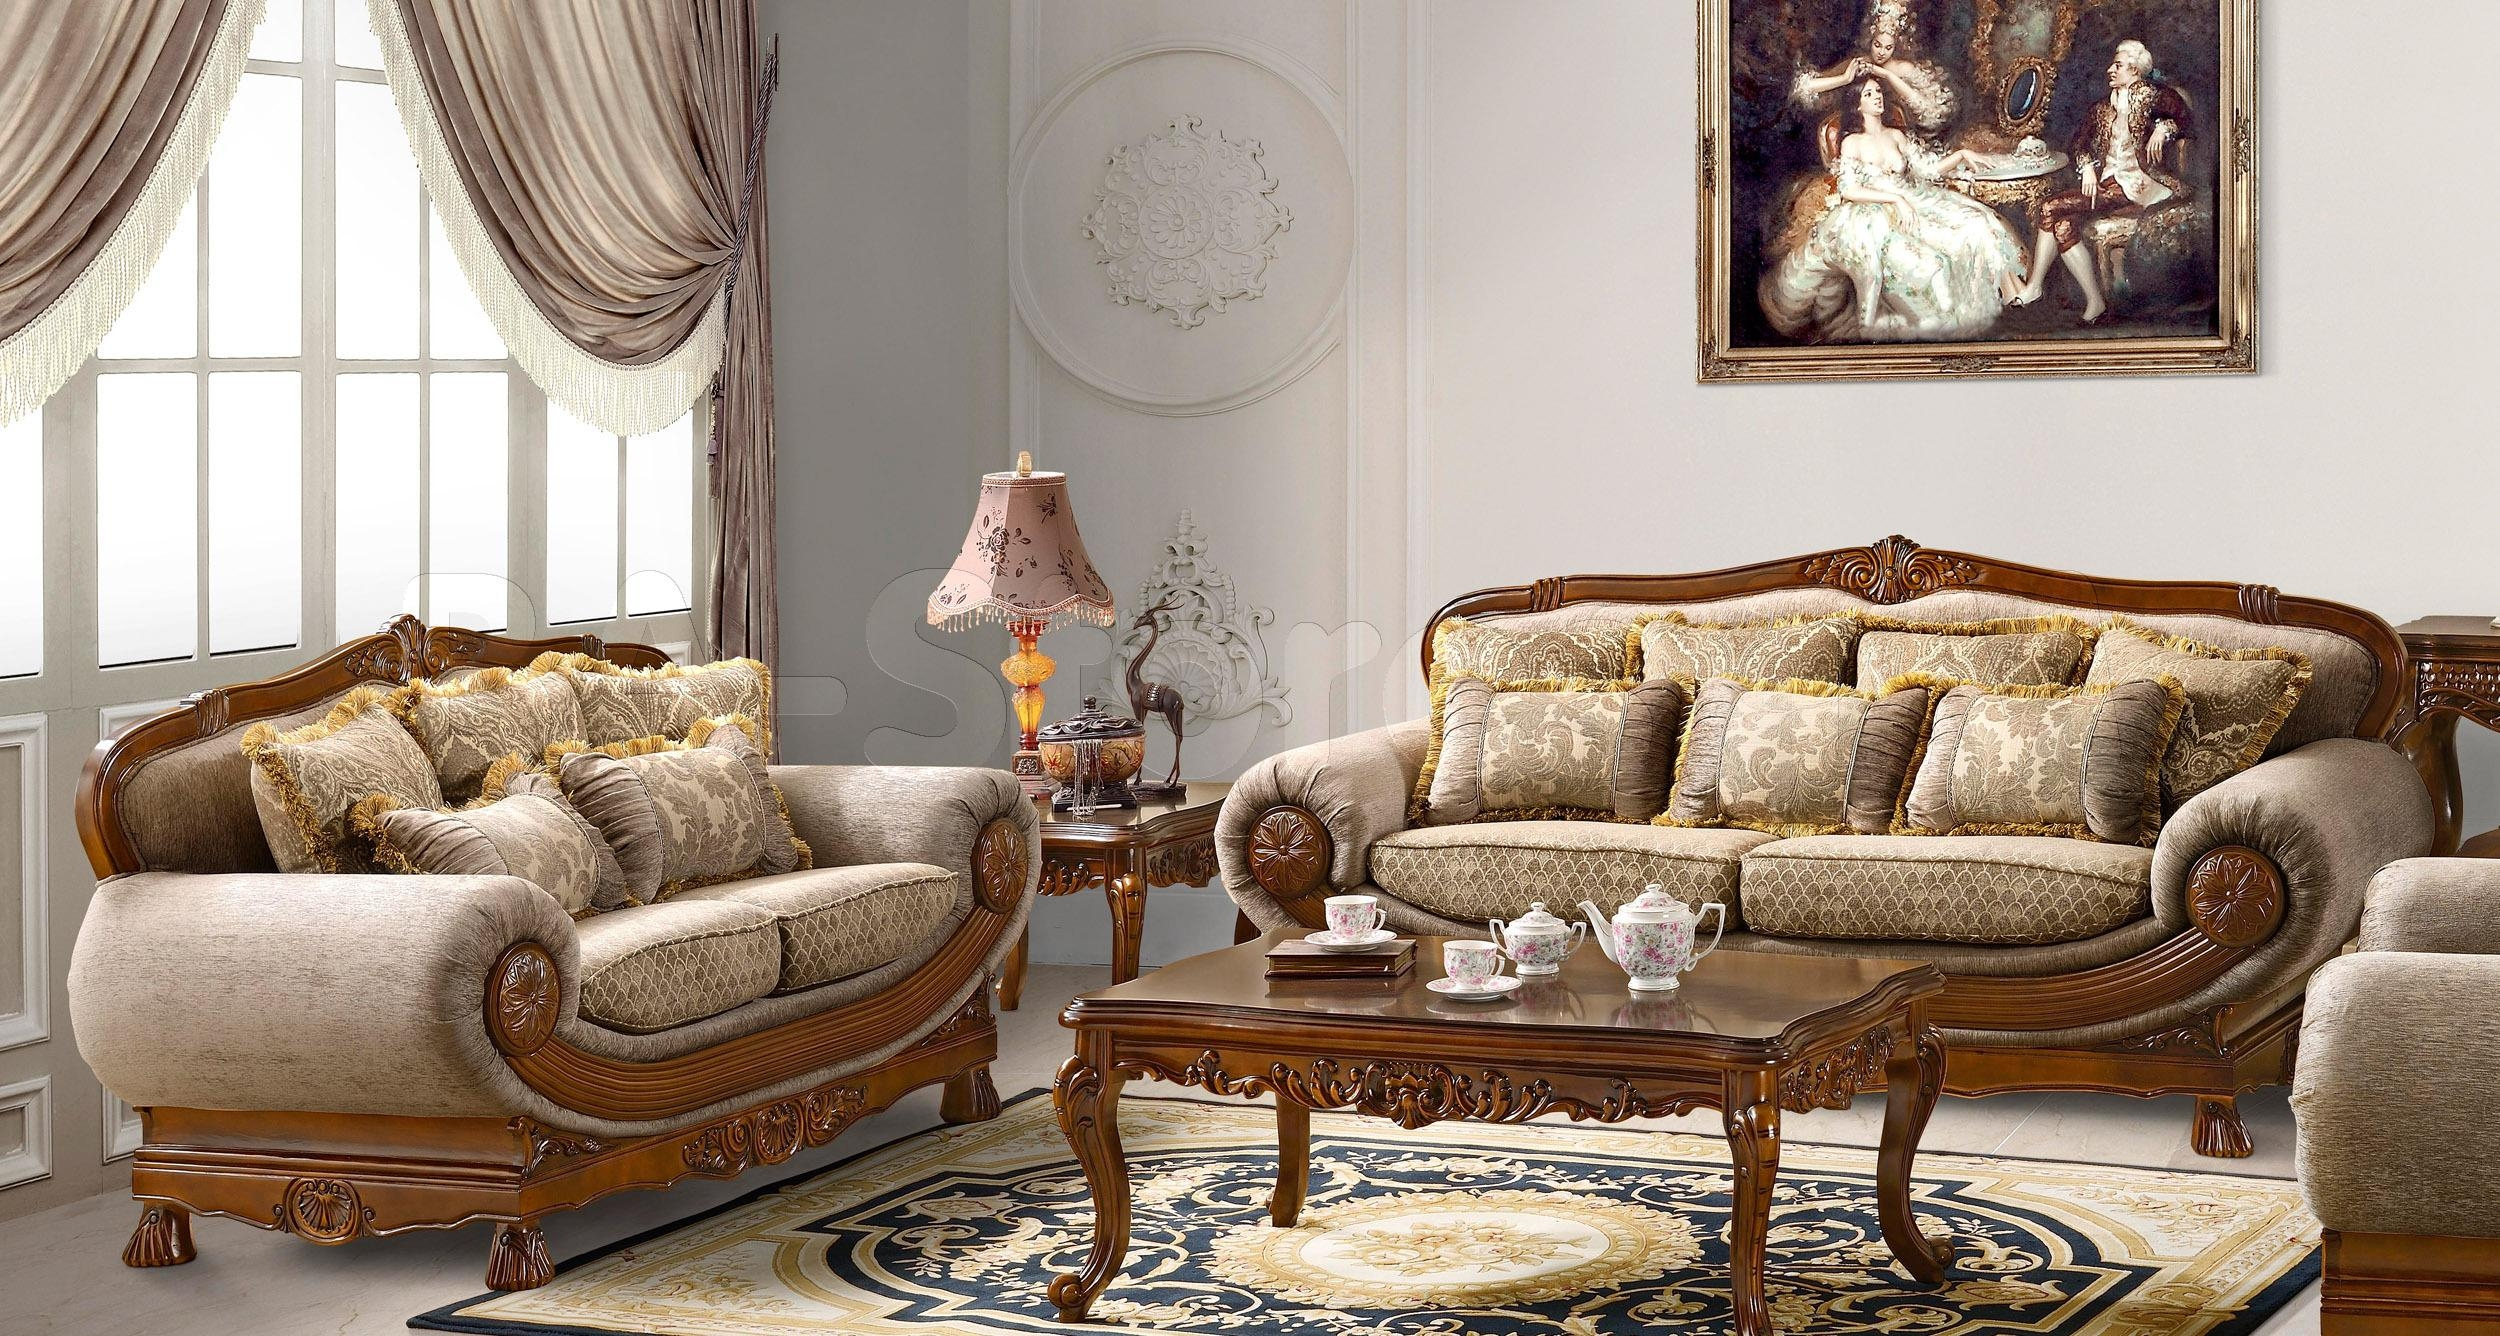 Leather Sectional Sofa With Cuddler | Best Home Furniture Ideas With Regard To Traditional Sofas And Chairs (Image 7 of 20)